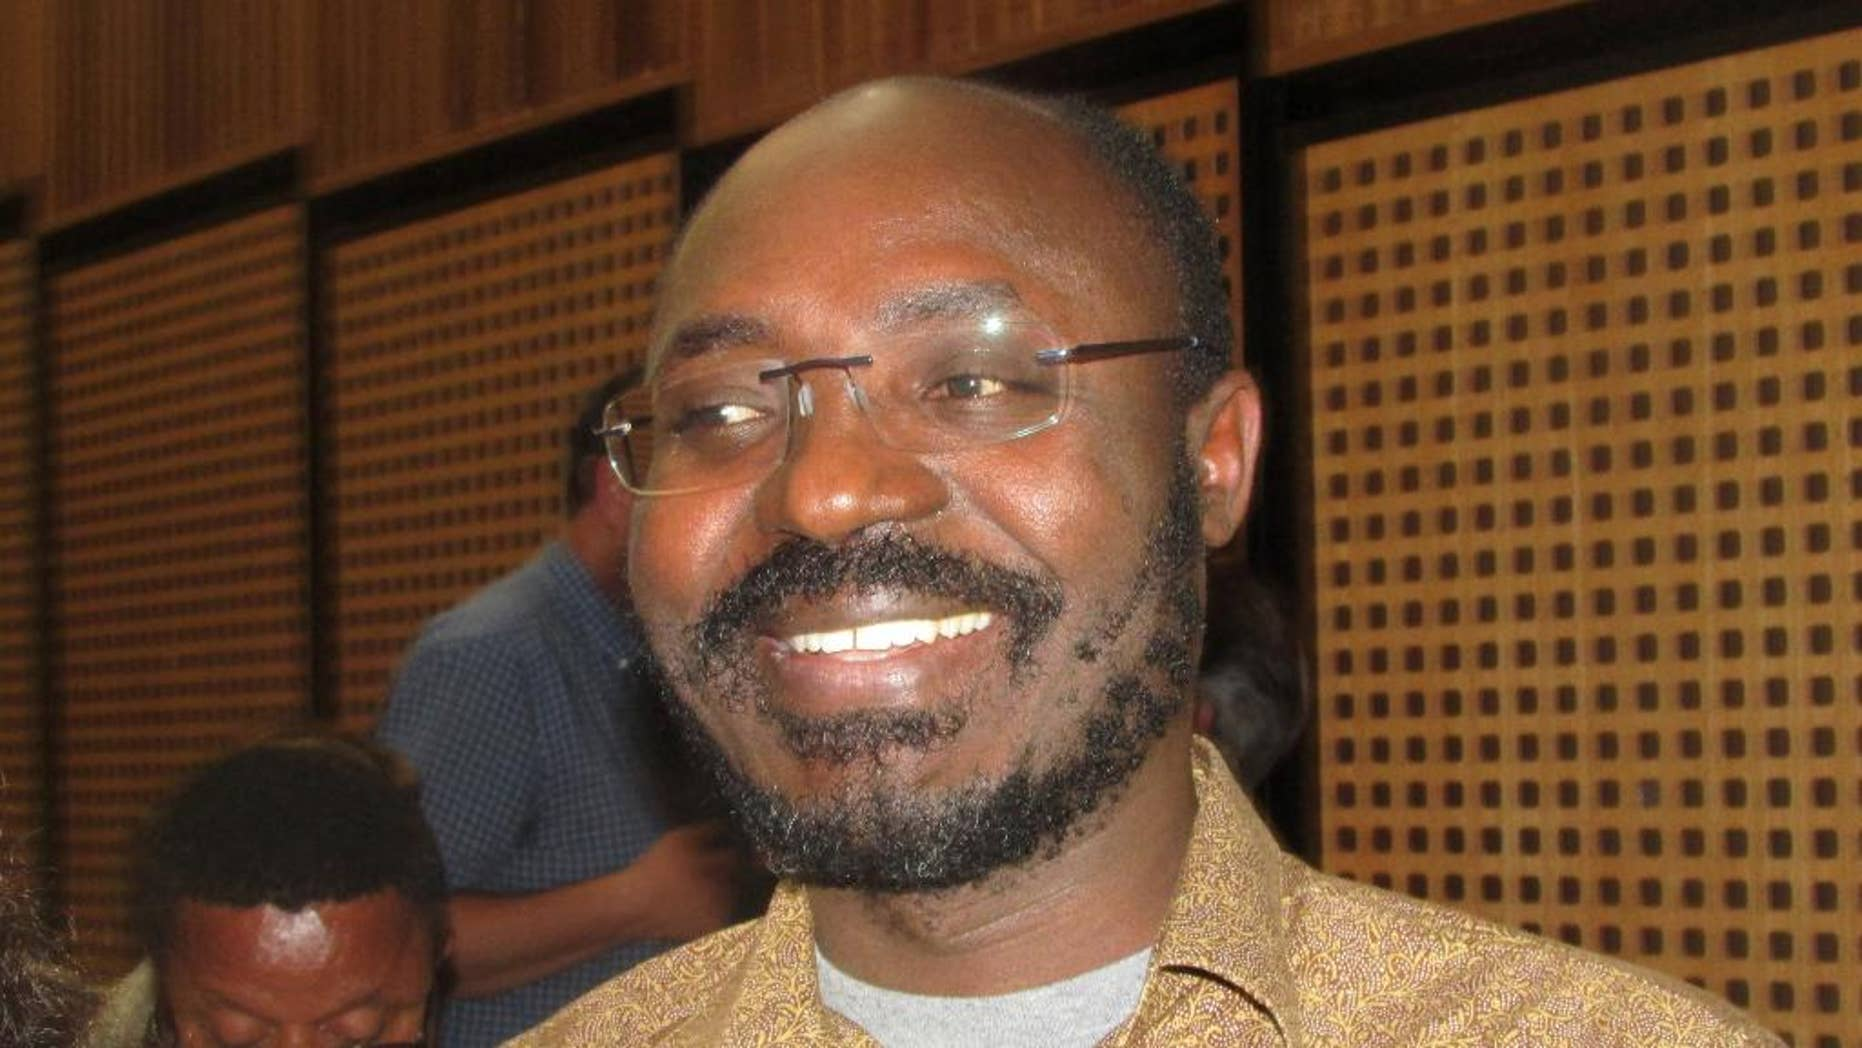 This photo taken May 11, 2014 shows Angolan journalist and human rights advocate, Rafael Marques de Morais, during a visit to Johannesburg, South Africa. Marques was last month found guilty of libel and defamation after publishing a 2011 book that alleged that a group of generals and three companies were linked to human rights abuses at diamond mines in Angola. (AP Photo/Simon Allison)